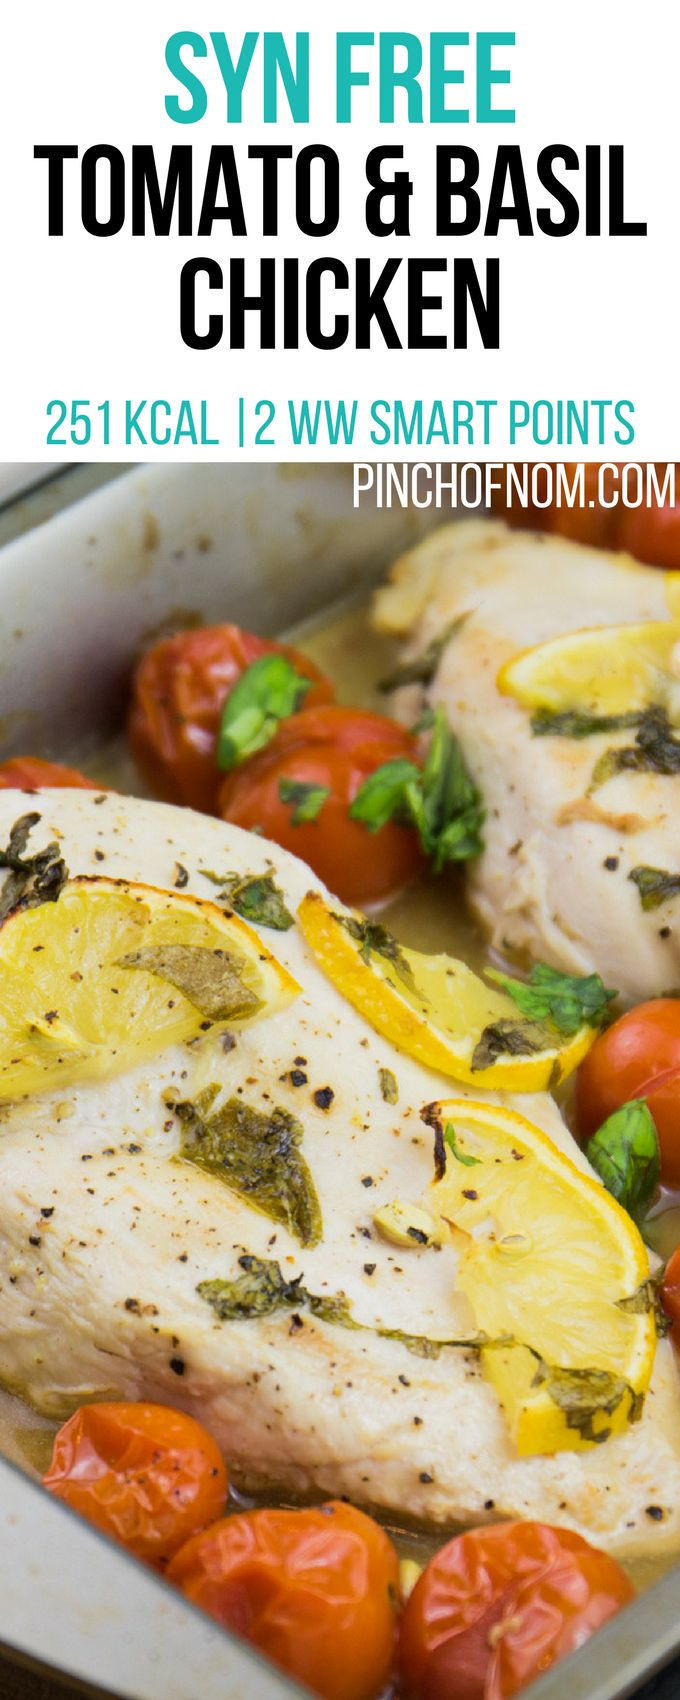 Syn Free Tomato and Basil Chicken | Pinch Of Nom Slimming World Recipes 251 kcal | Syn Free | 2 Weight Watchers Smart Points